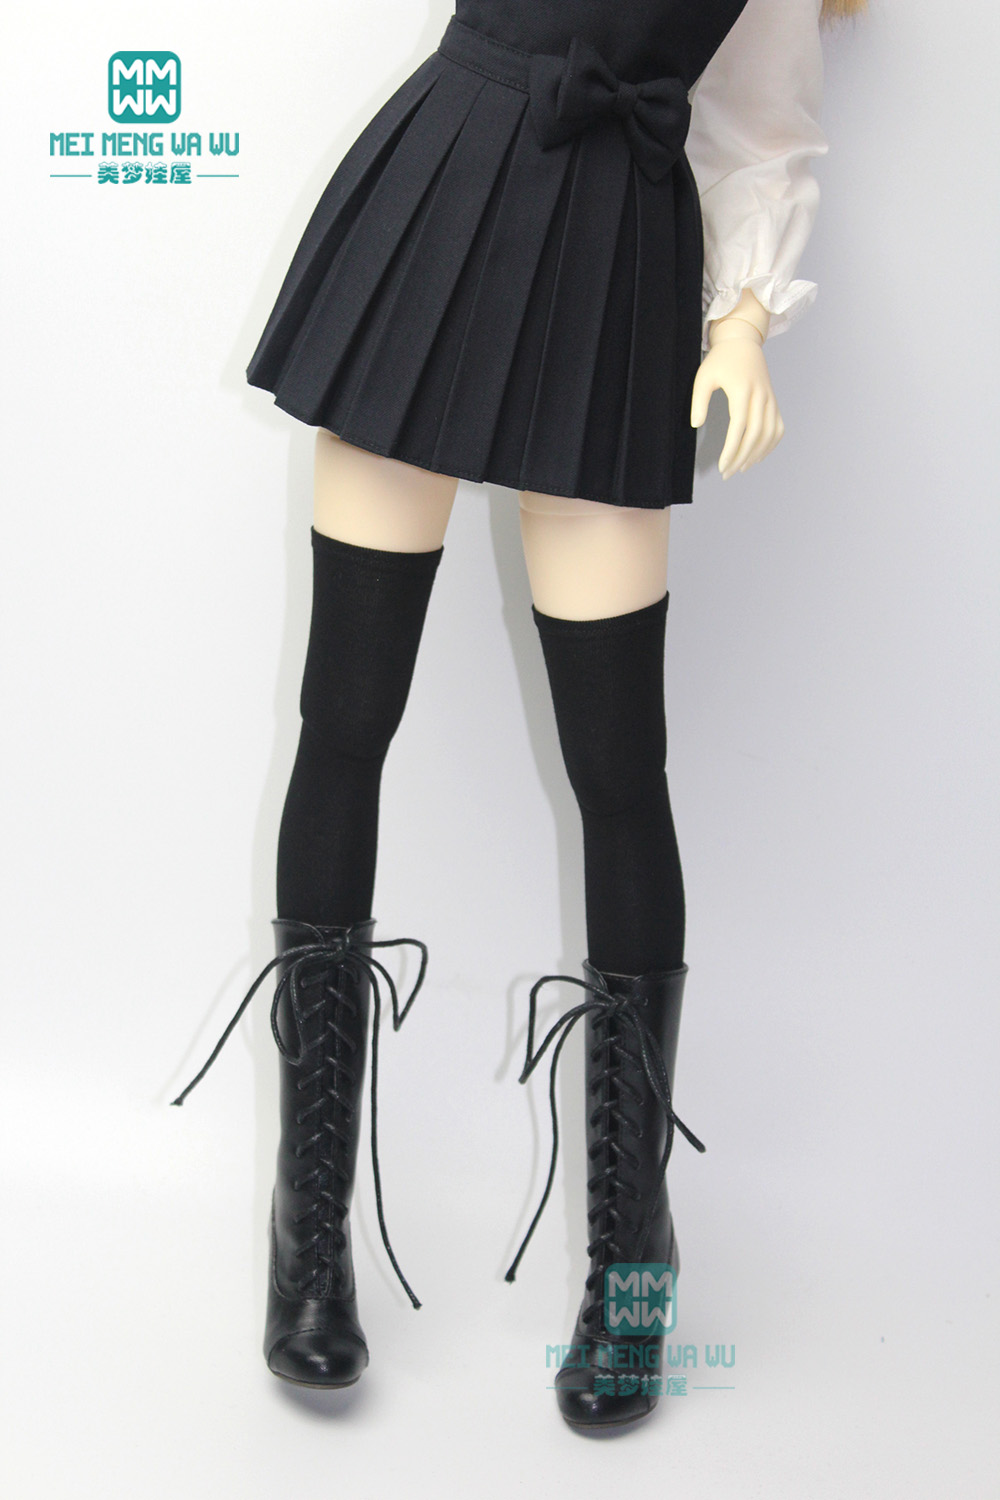 <font><b>BJD</b></font> accessories fashion black stockings for 27-60cm <font><b>1/3</b></font> 1/4 /1/6 <font><b>BJD</b></font> DD <font><b>SD</b></font> doll <font><b>clothes</b></font> image